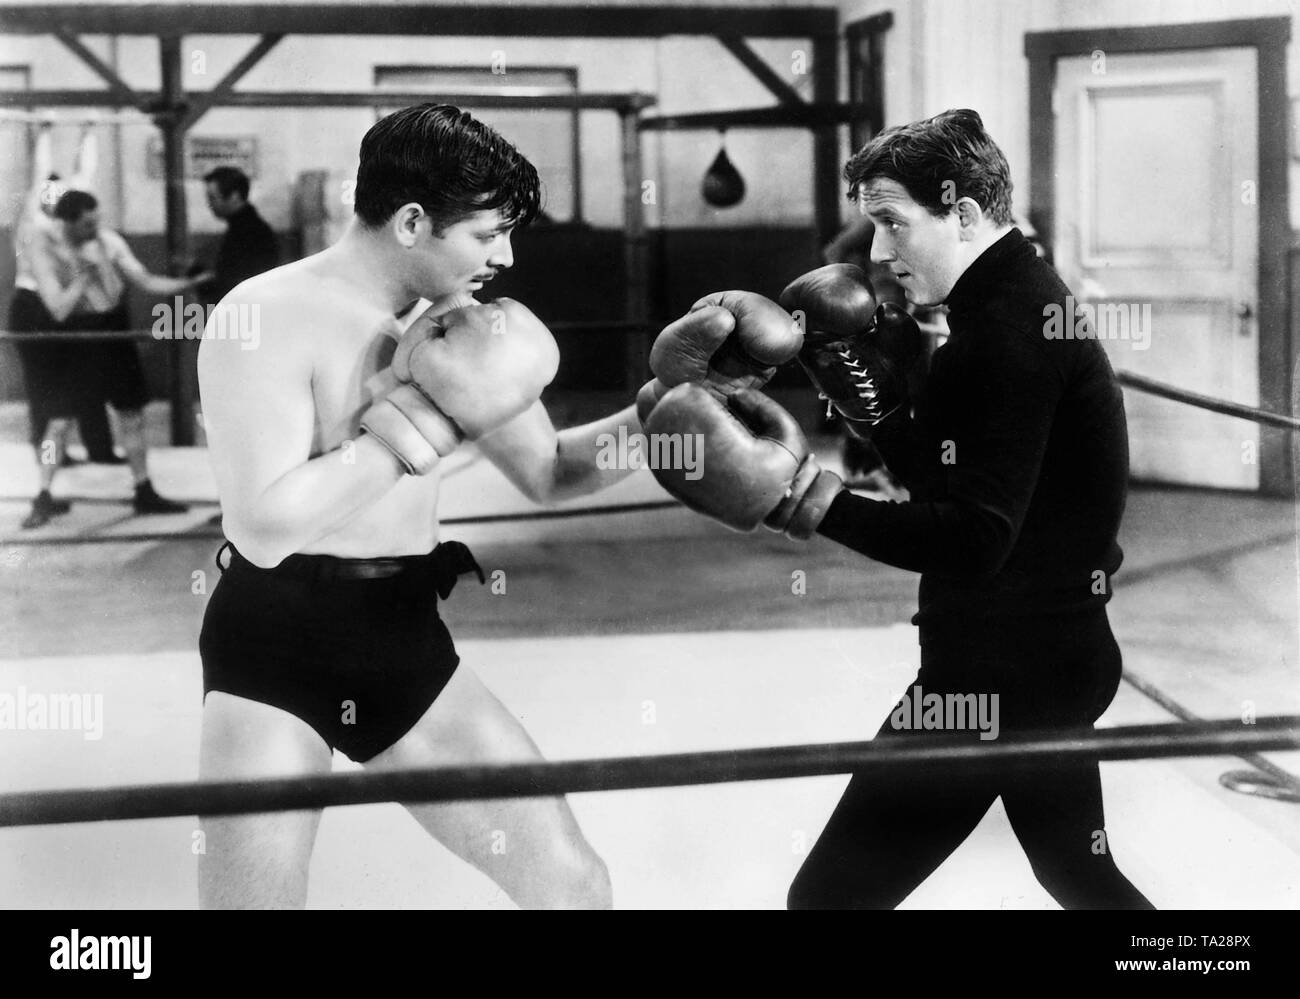 Boxing Ring Black and White Stock Photos & Images - Alamy